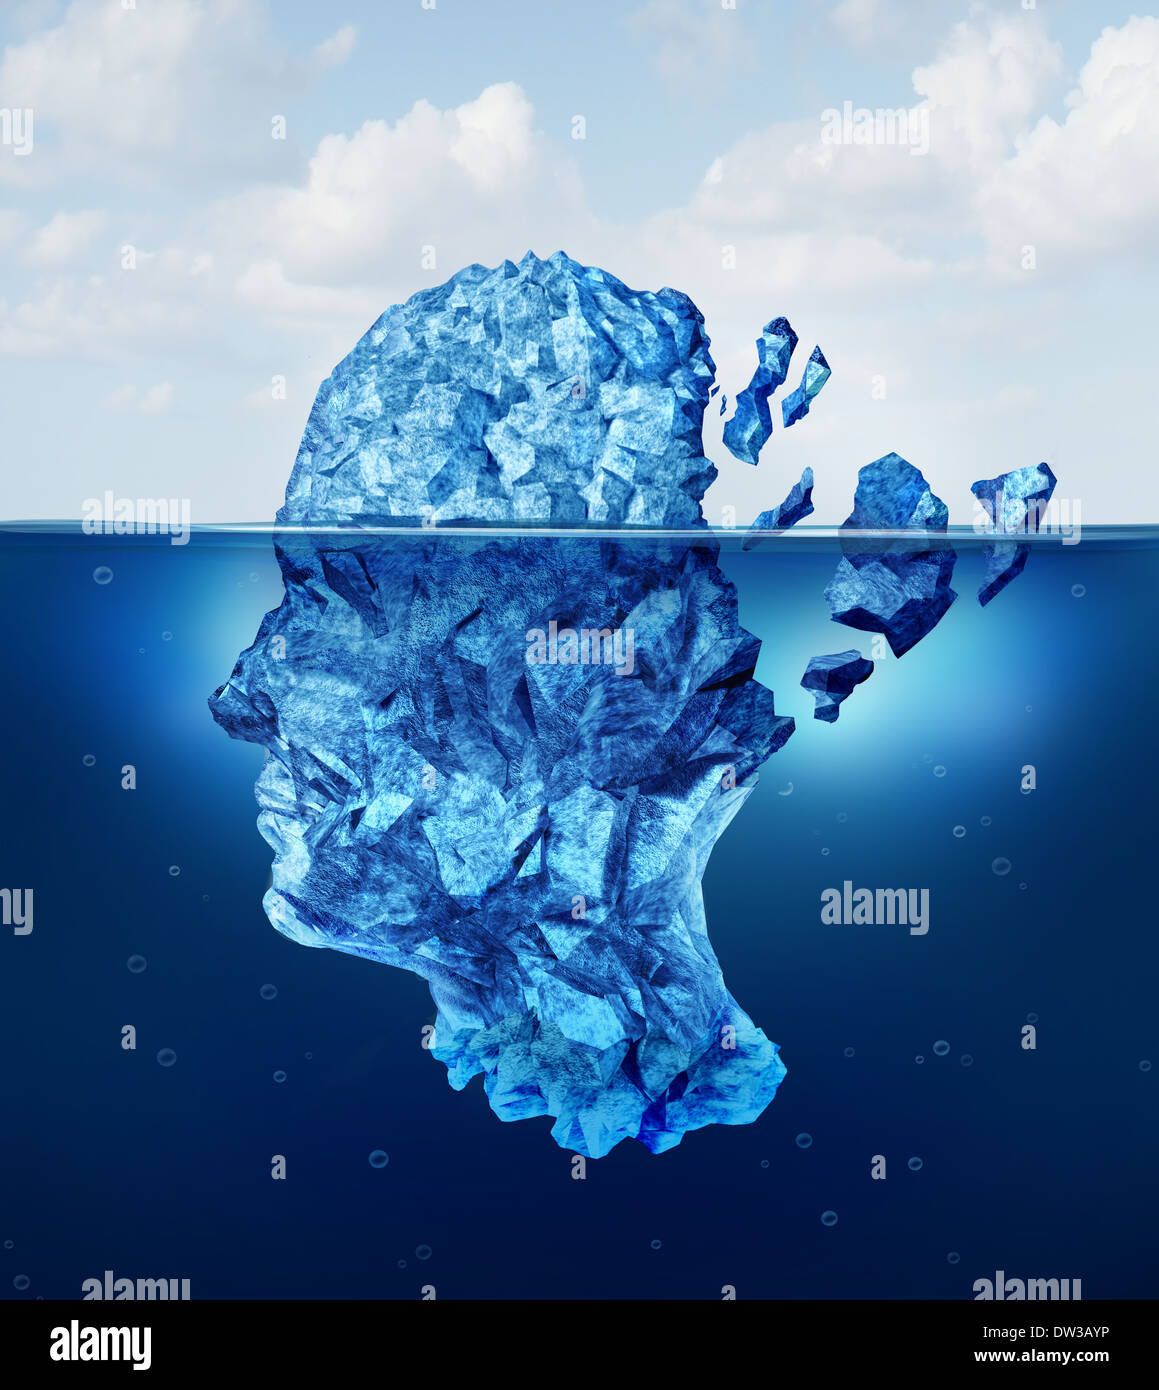 Brain trauma and aging or neurological damage concept as an iceberg floating in an ocean breaking apart as a health crisis metap - Stock Image